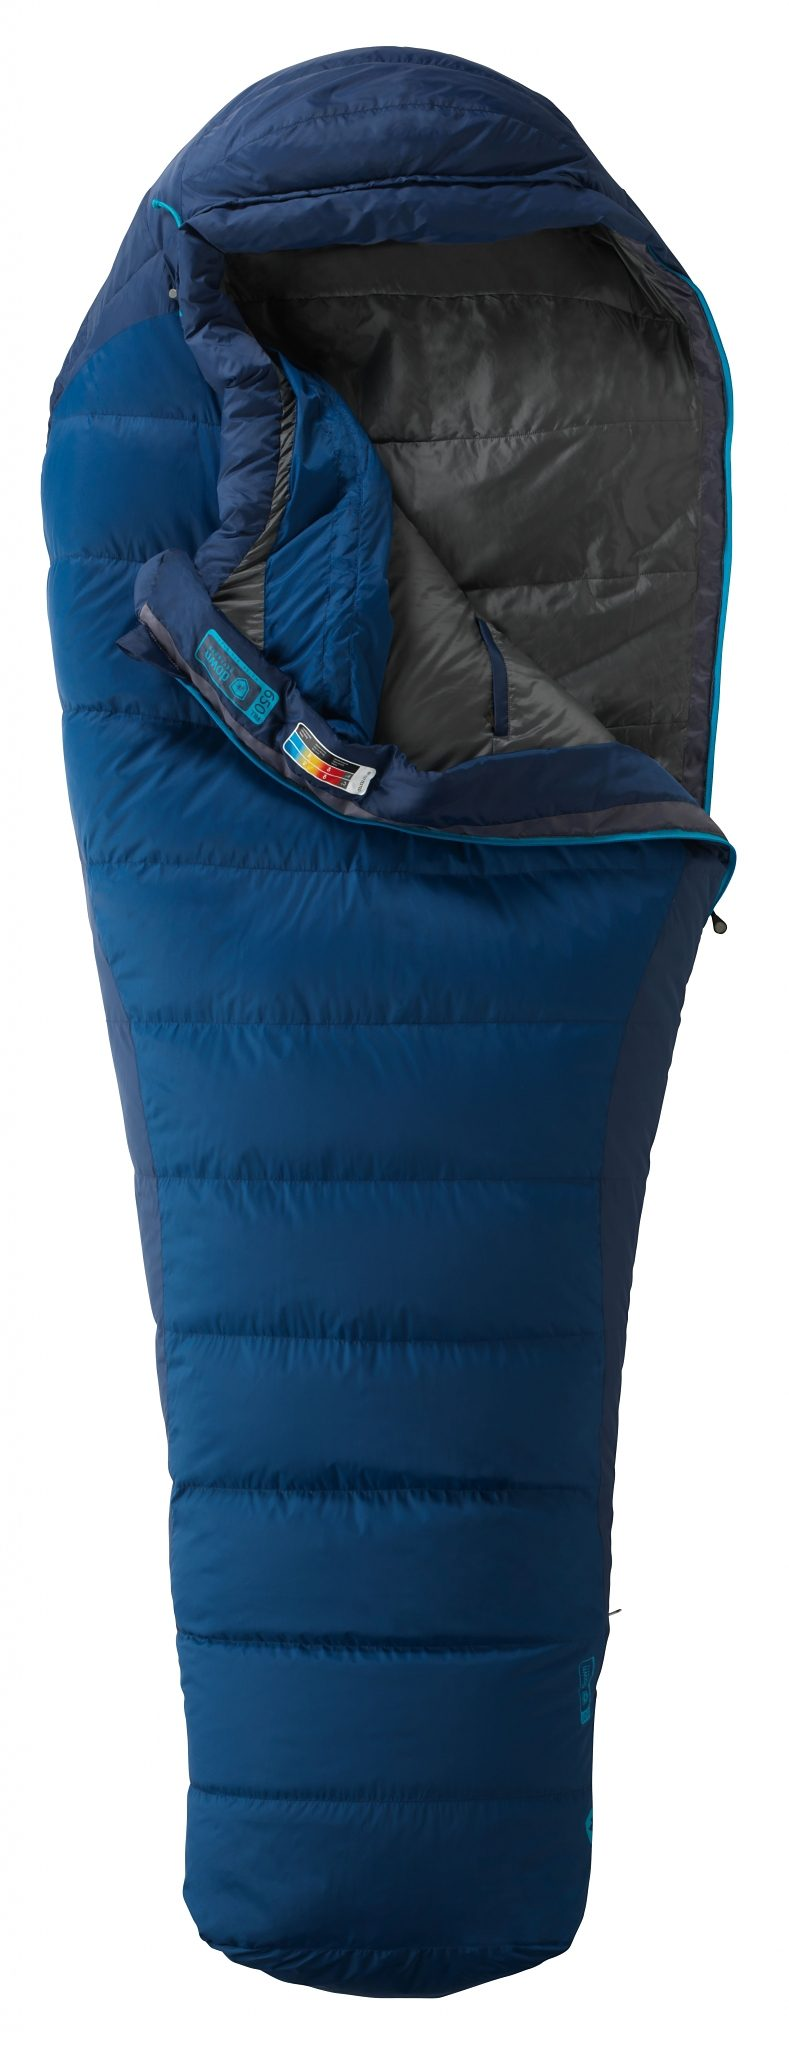 Marmot Schlafsack »Scandium Sleeping Bag Long«